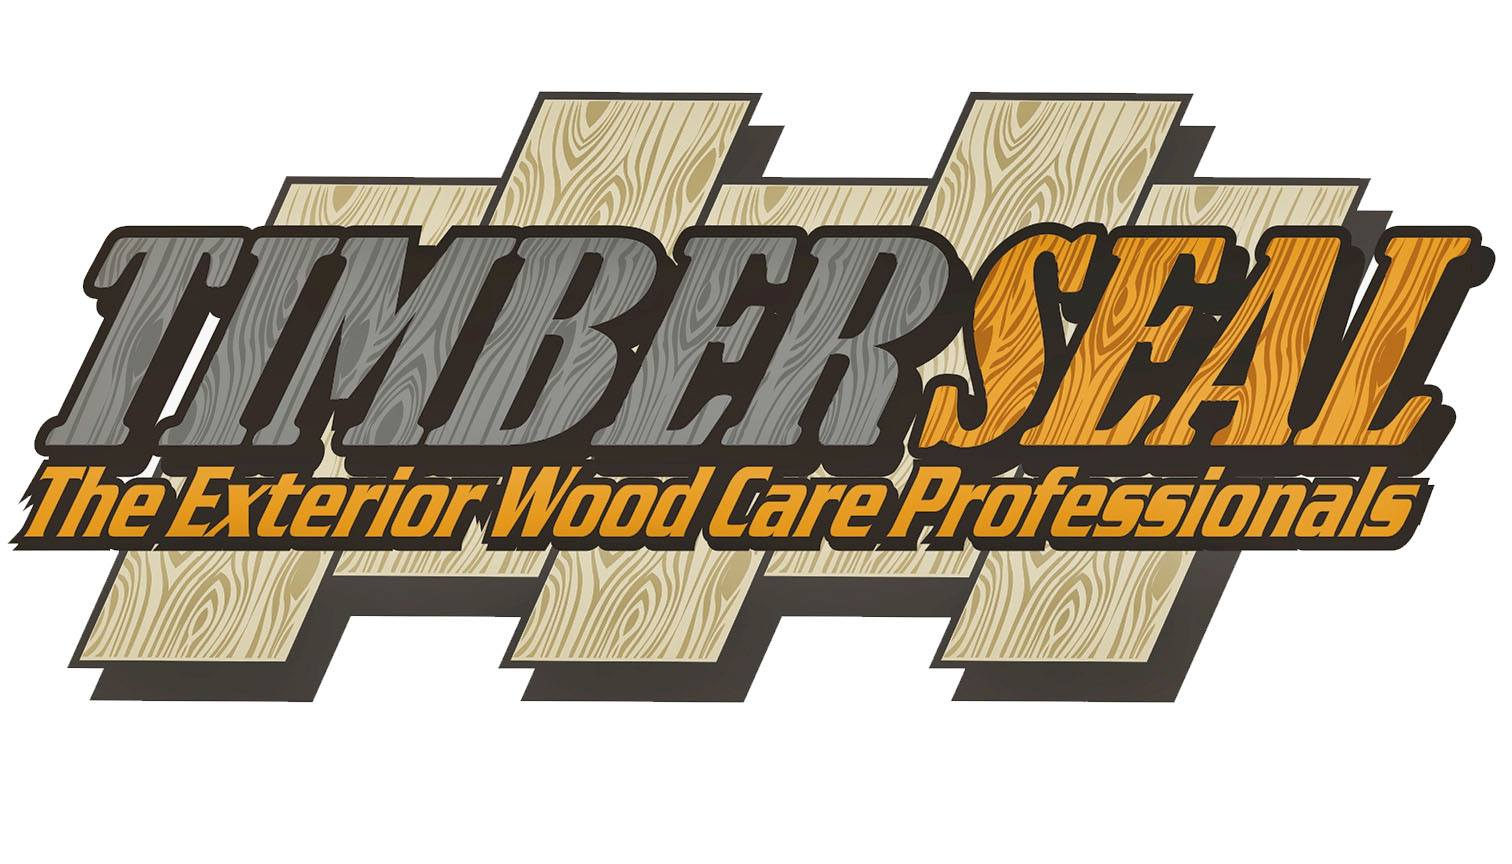 Looking for an Exciting Change in Work? Timberseal, LLC is Now Hiring a Restoration Technician